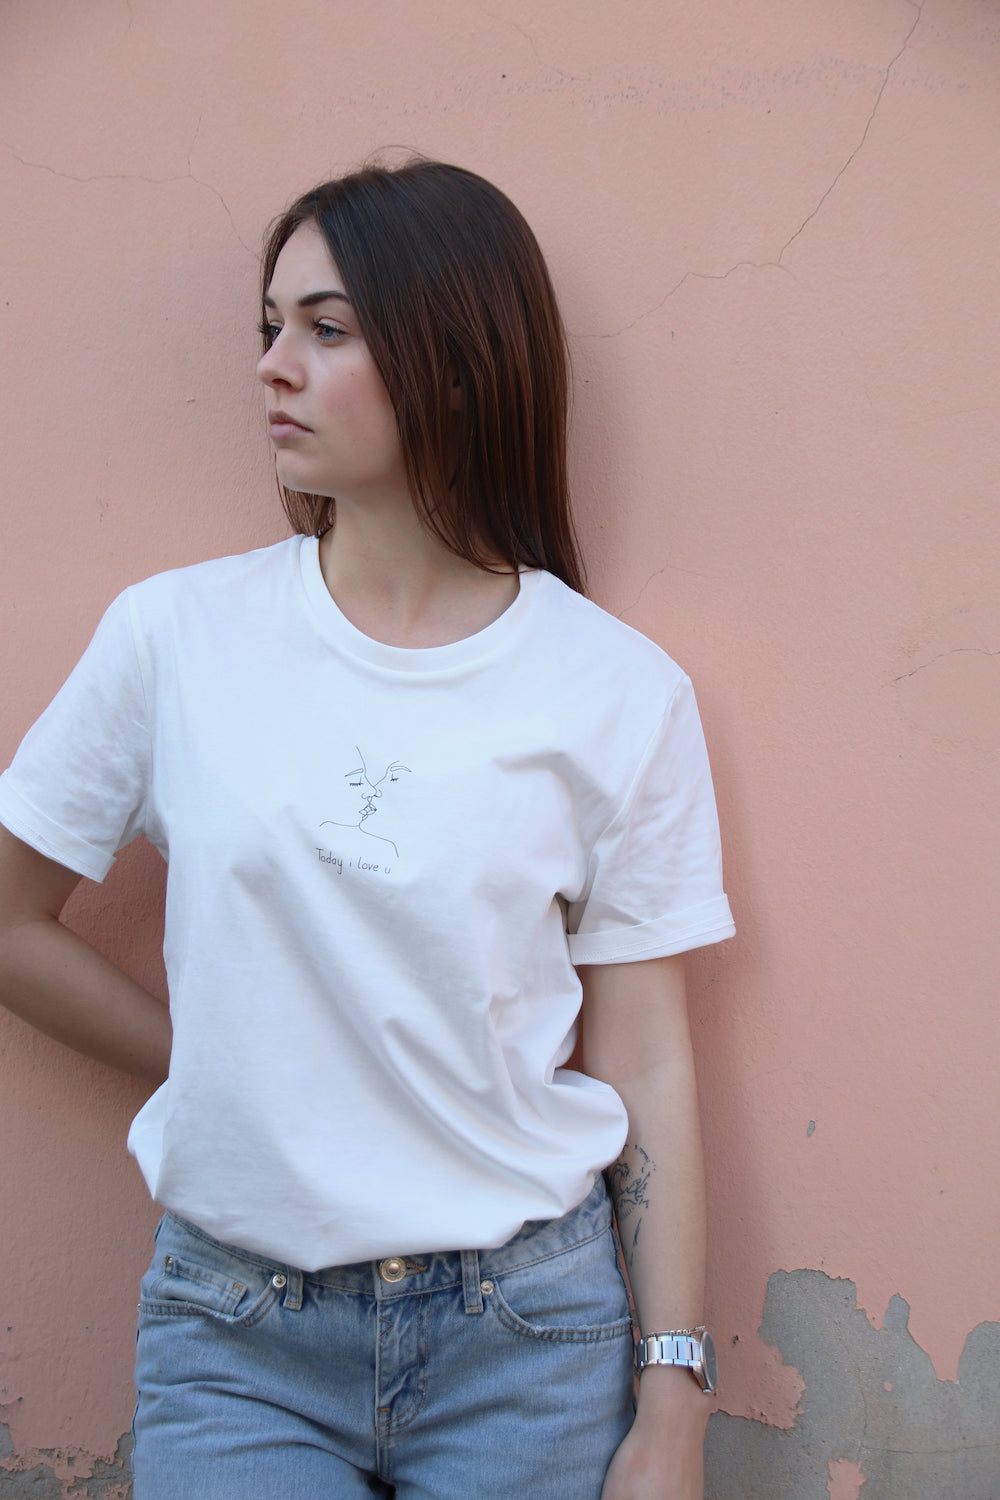 T-shirt off white - Today i love u - Mood Clothing